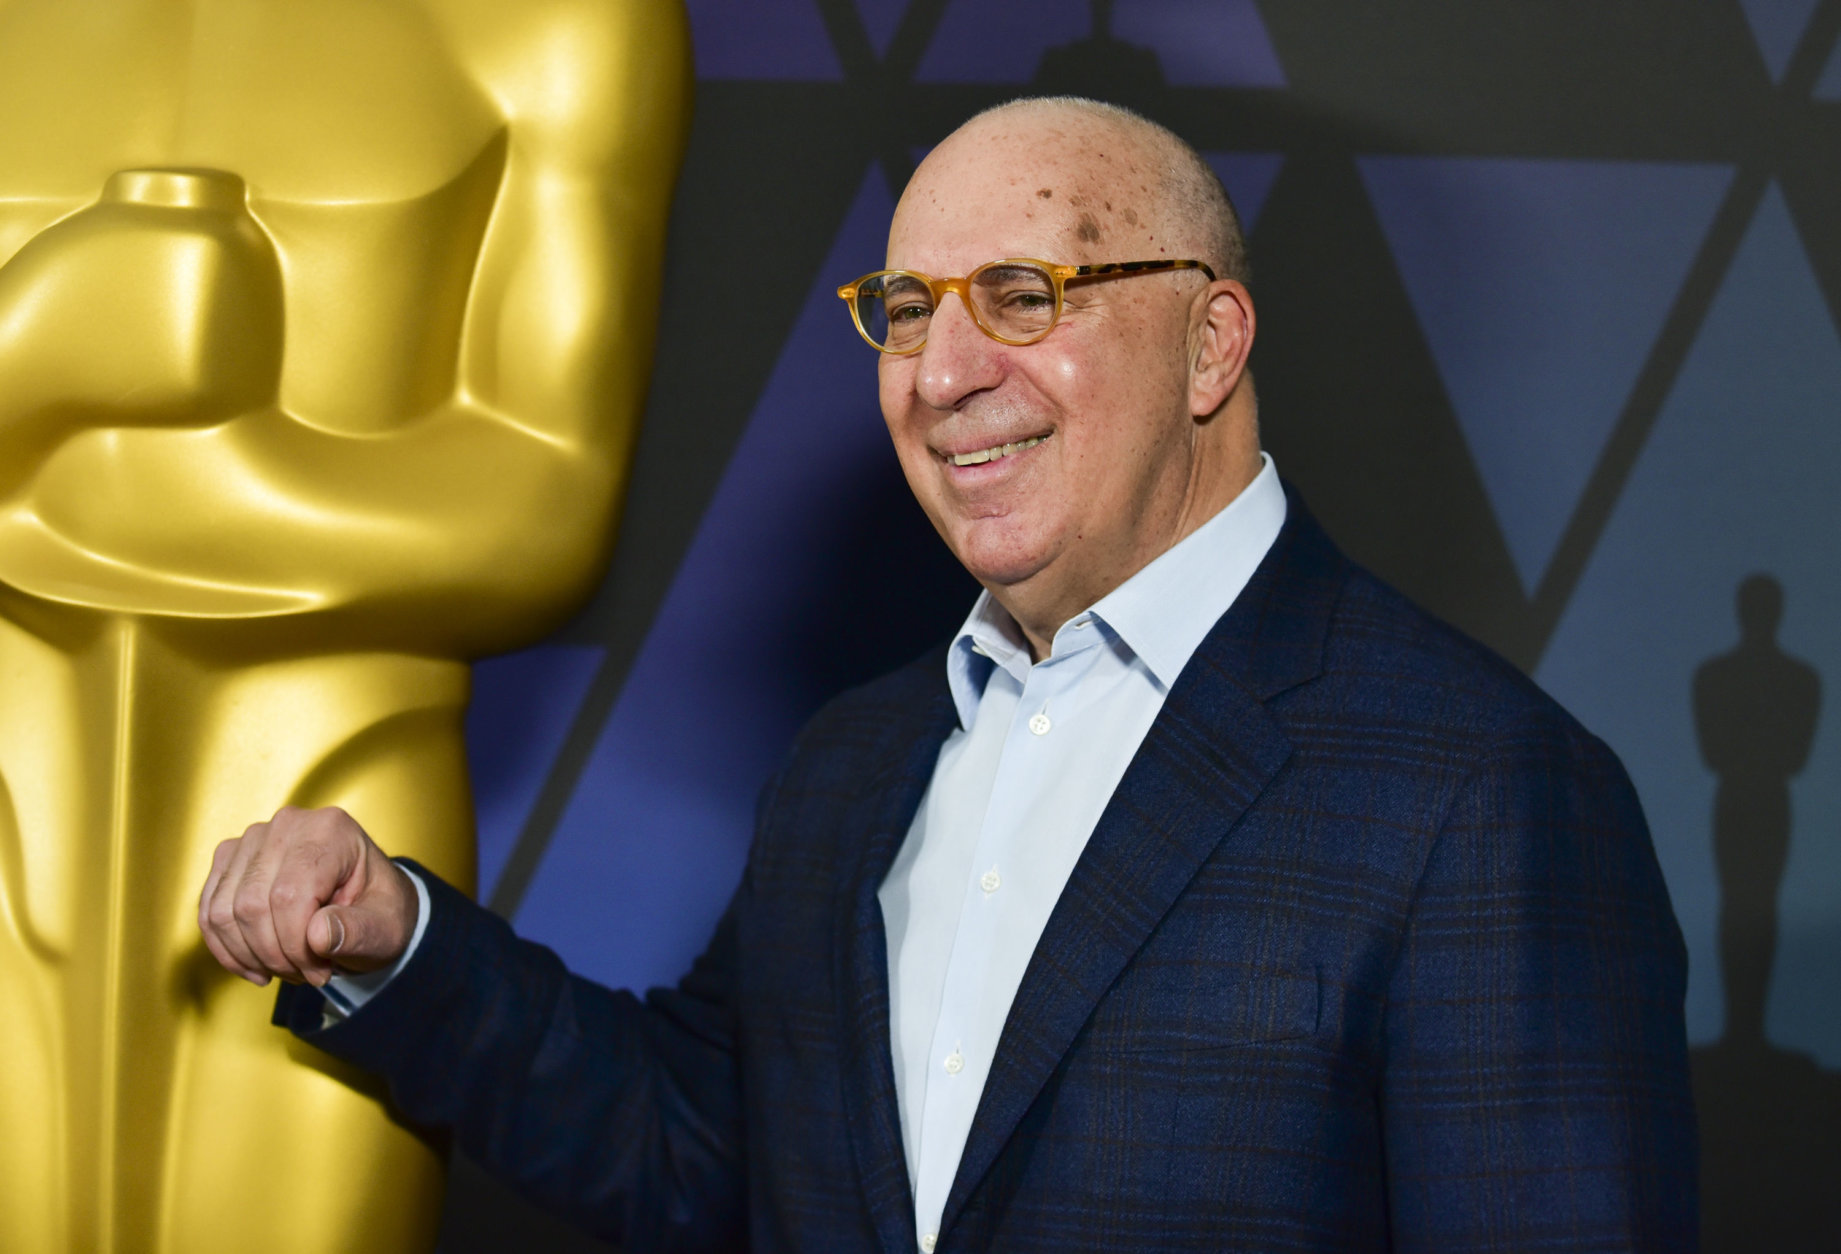 BEVERLY HILLS, CALIFORNIA - FEBRUARY 23: Animator Steven Rales attends the 91st Oscars - Oscar Week: Animated Features at the Academy of Motion Picture Arts and Sciences on February 23, 2019 in Beverly Hills, California. (Photo by Rodin Eckenroth/Getty Images)